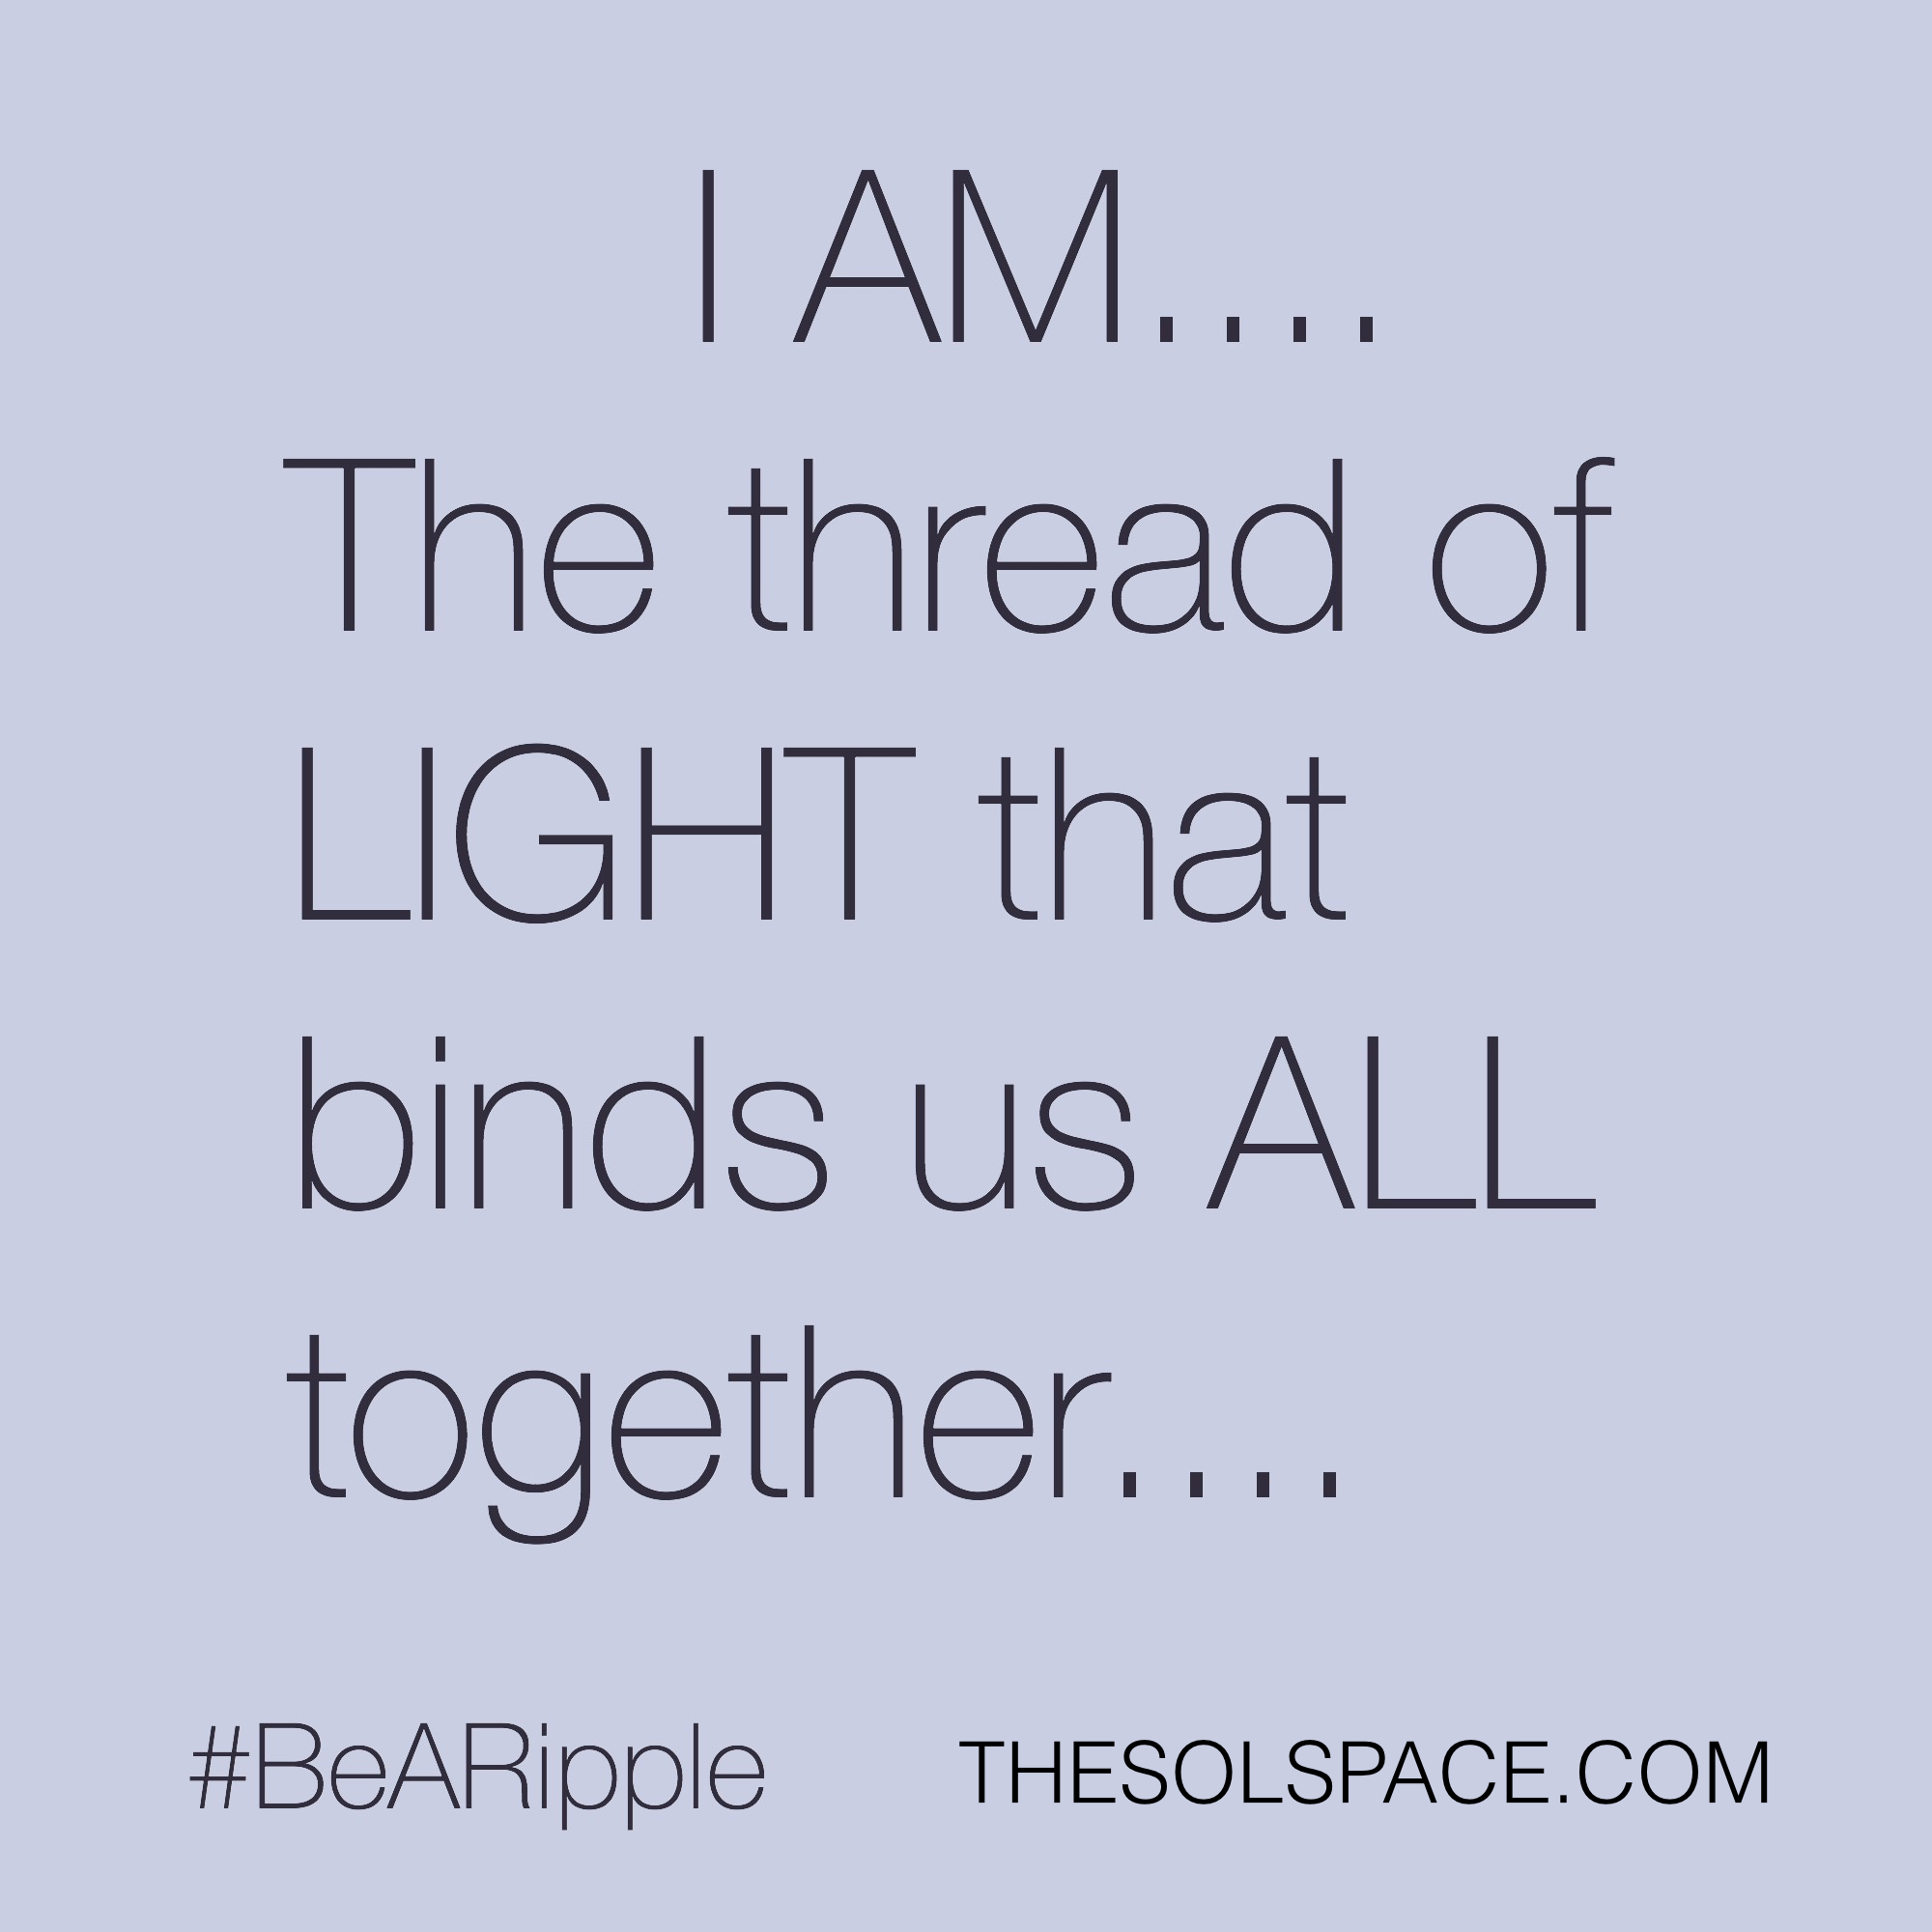 #BeARipple..SOL-I AM..the thread of light that binds us ALL together... @theSOLspace